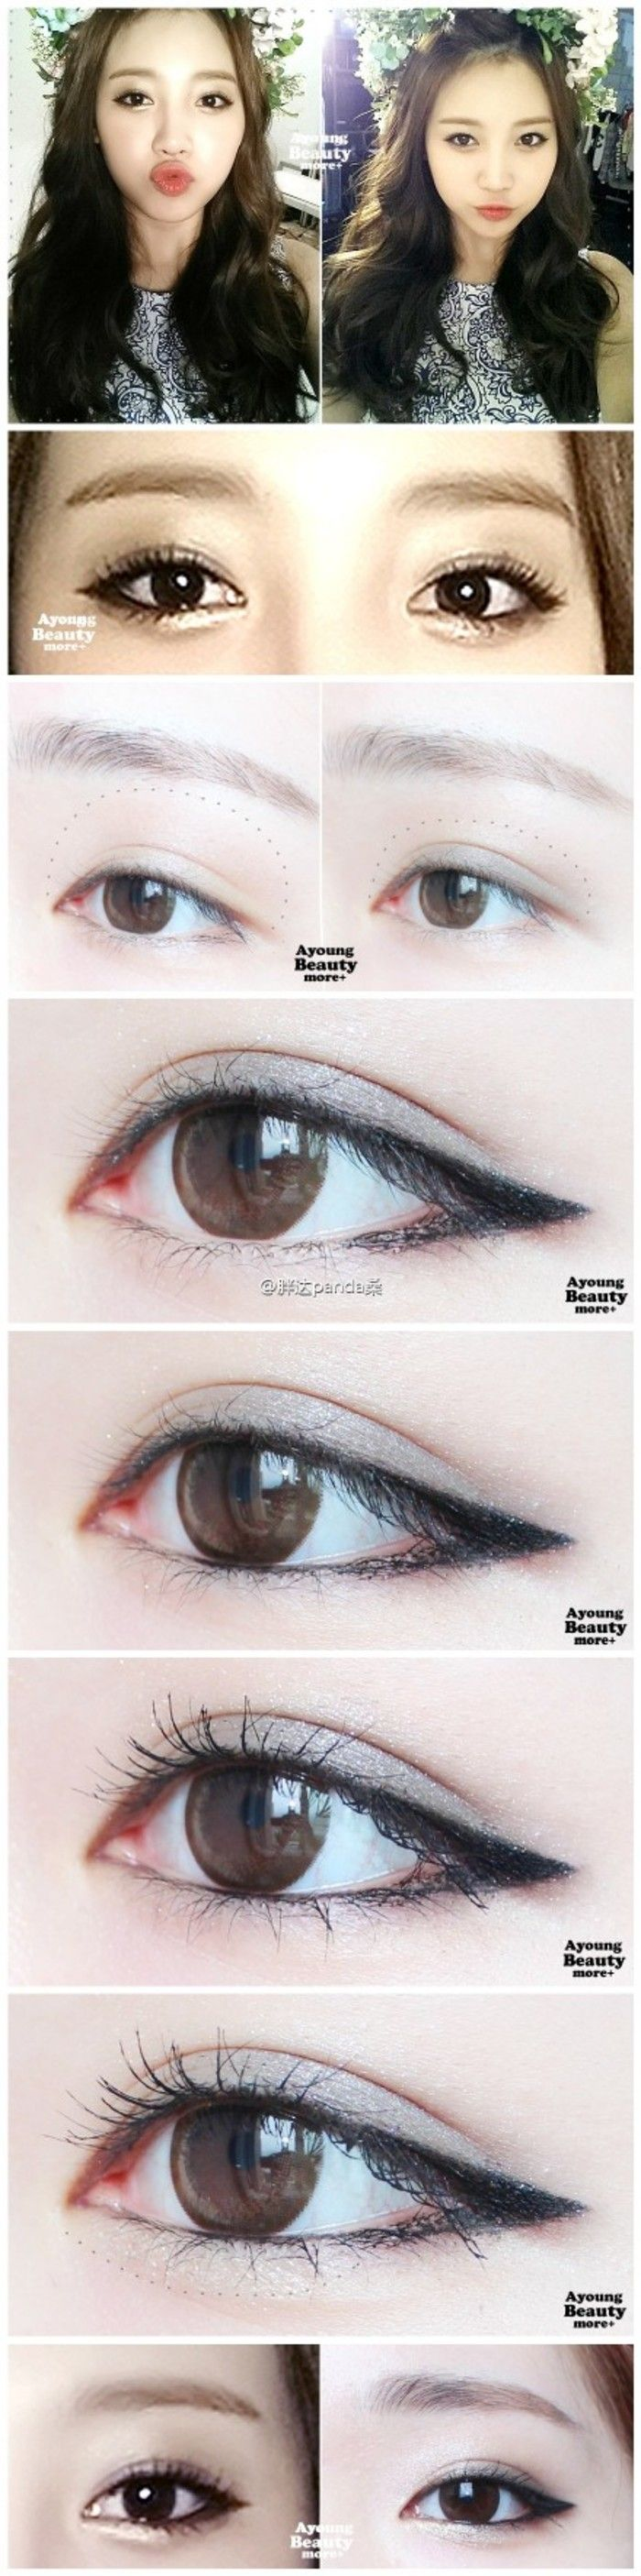 asian make up Try & put some highlighter in very inner corner part & blend out softly then using small rounded brush dab darker brown/black/navy right near the edge of the eyeliner wing in circular motion inward dark brown/black is prob best. Also you can replicate the main eyeliner flick with three or four more drawn shorter end-flicks on top to create a false heavy eyelash look;for very narrow eyes you could also dab a light liquid light reflecting primer/highlighter by brow crease blend…